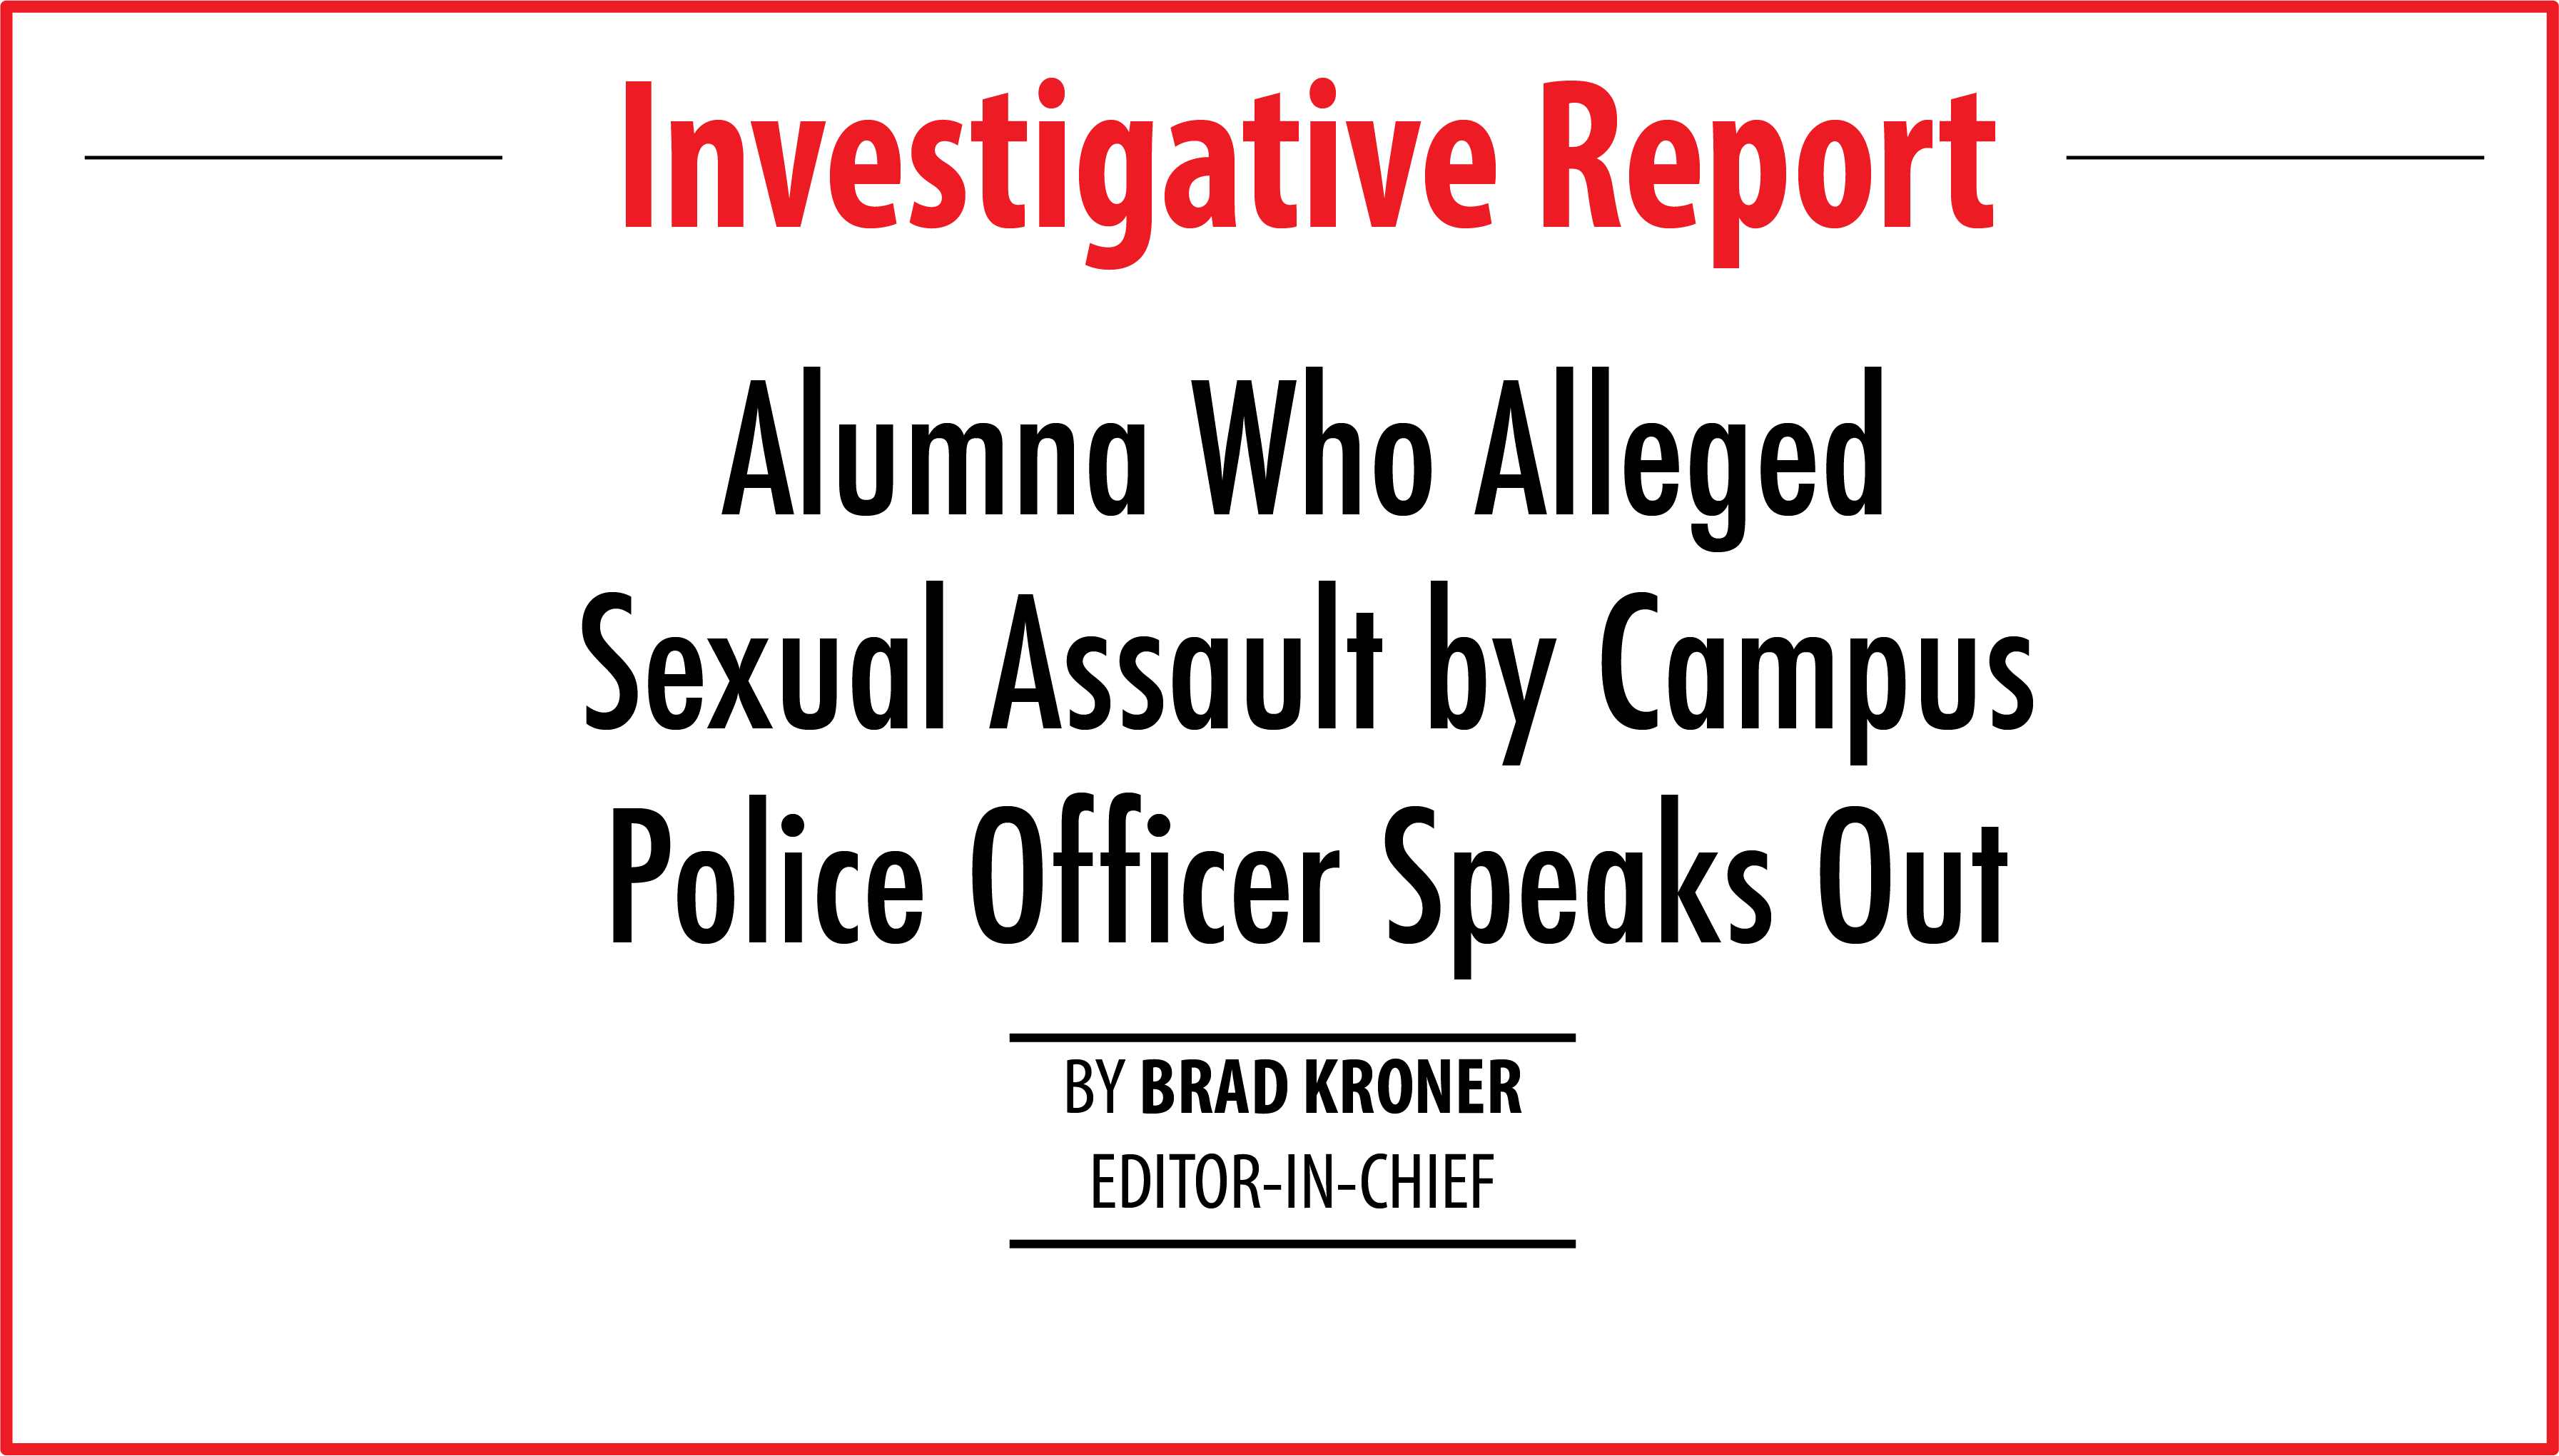 alumna who alleged assault